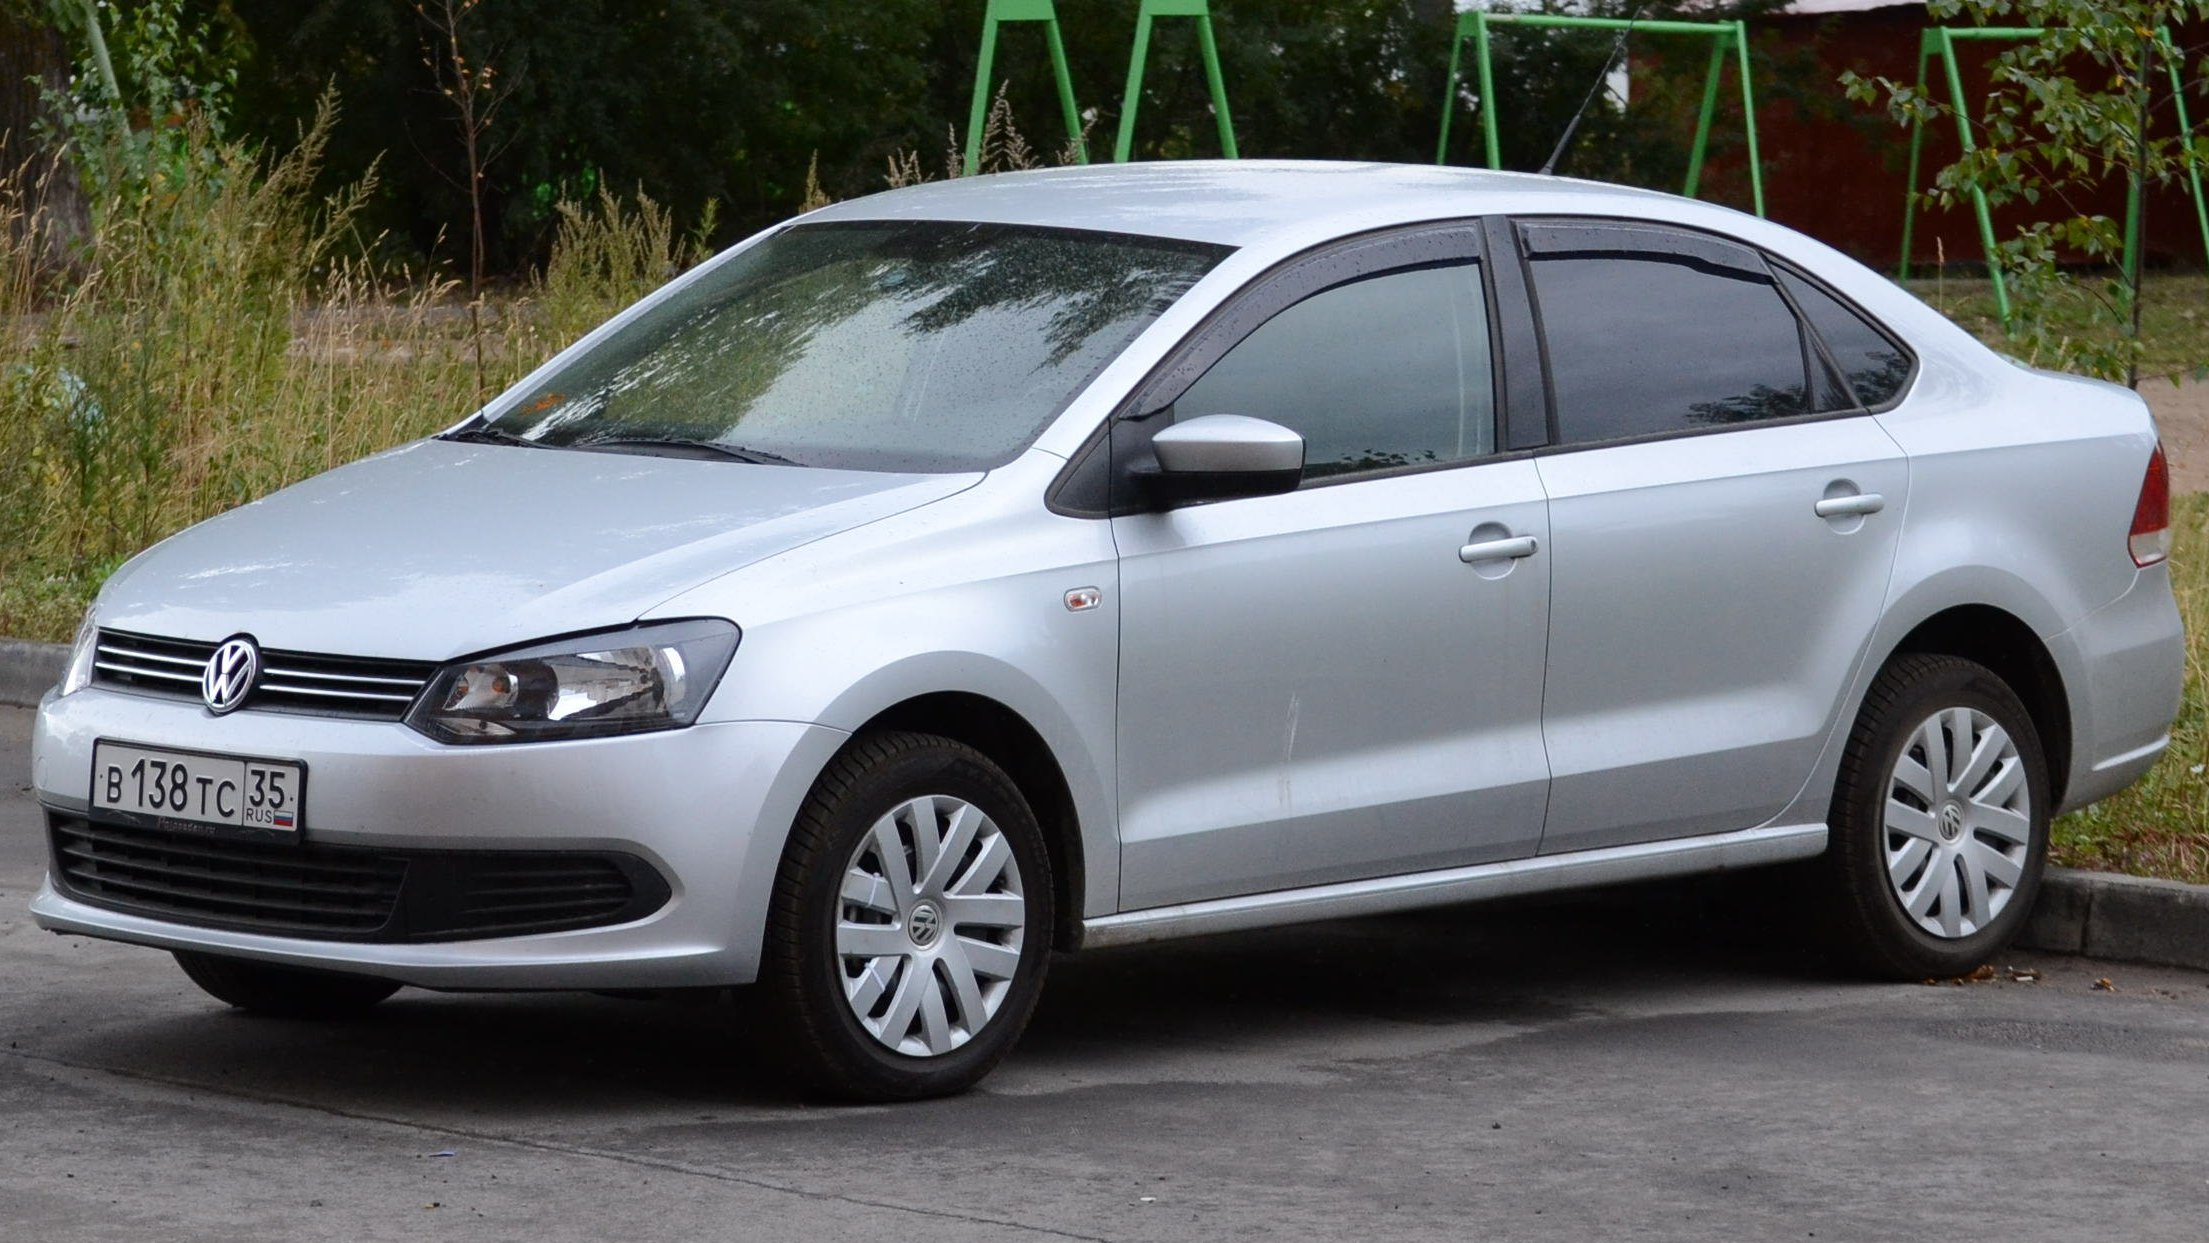 90920bfc18852 Volkswagen Polo Sedan — Википедия